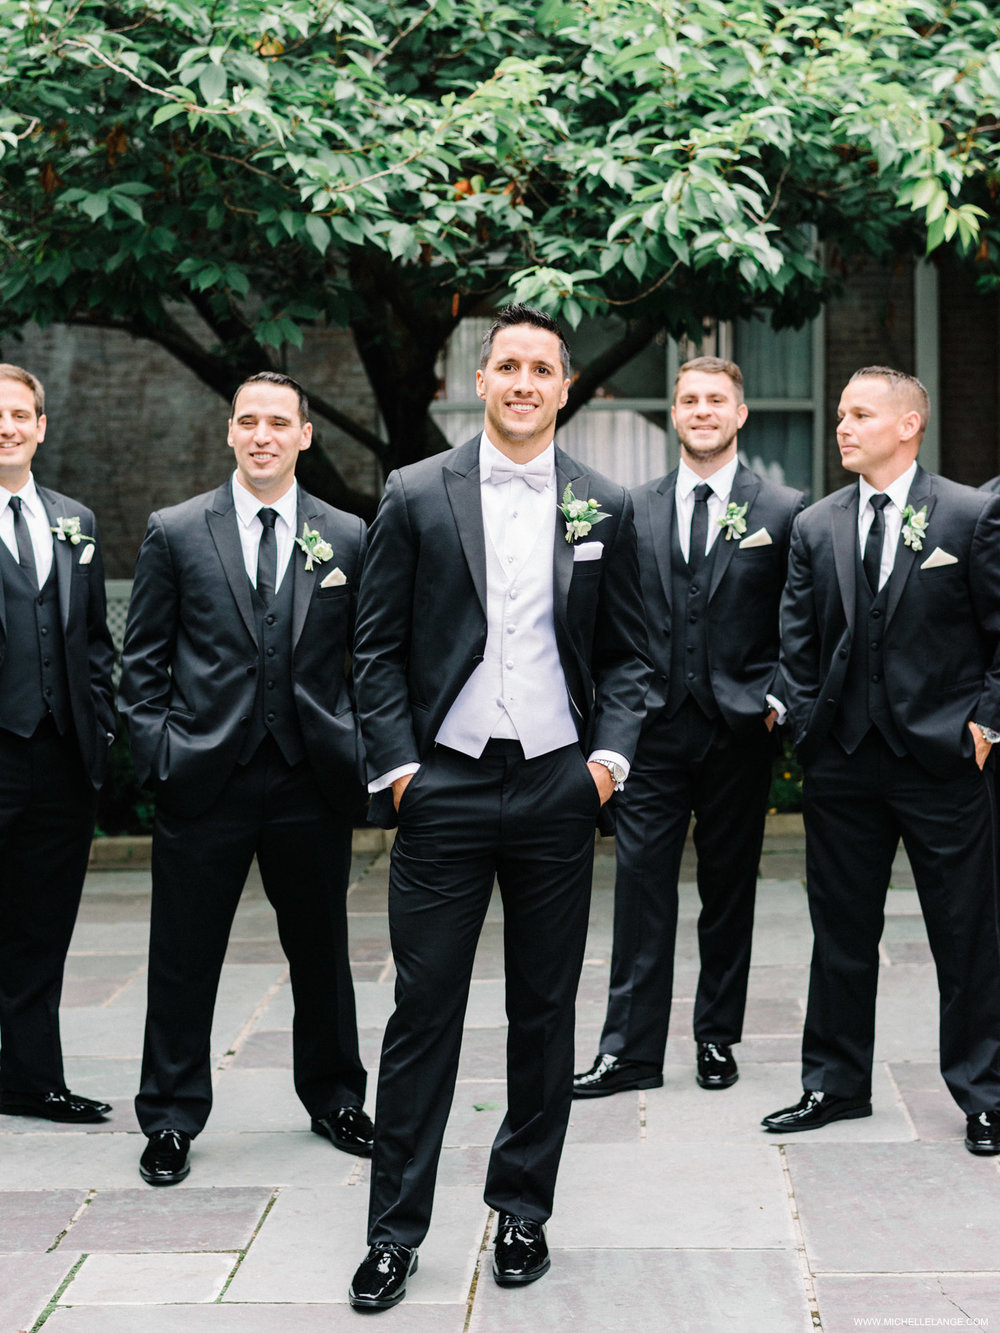 NY Wedding Photographer with Groomsmen at The Carltun